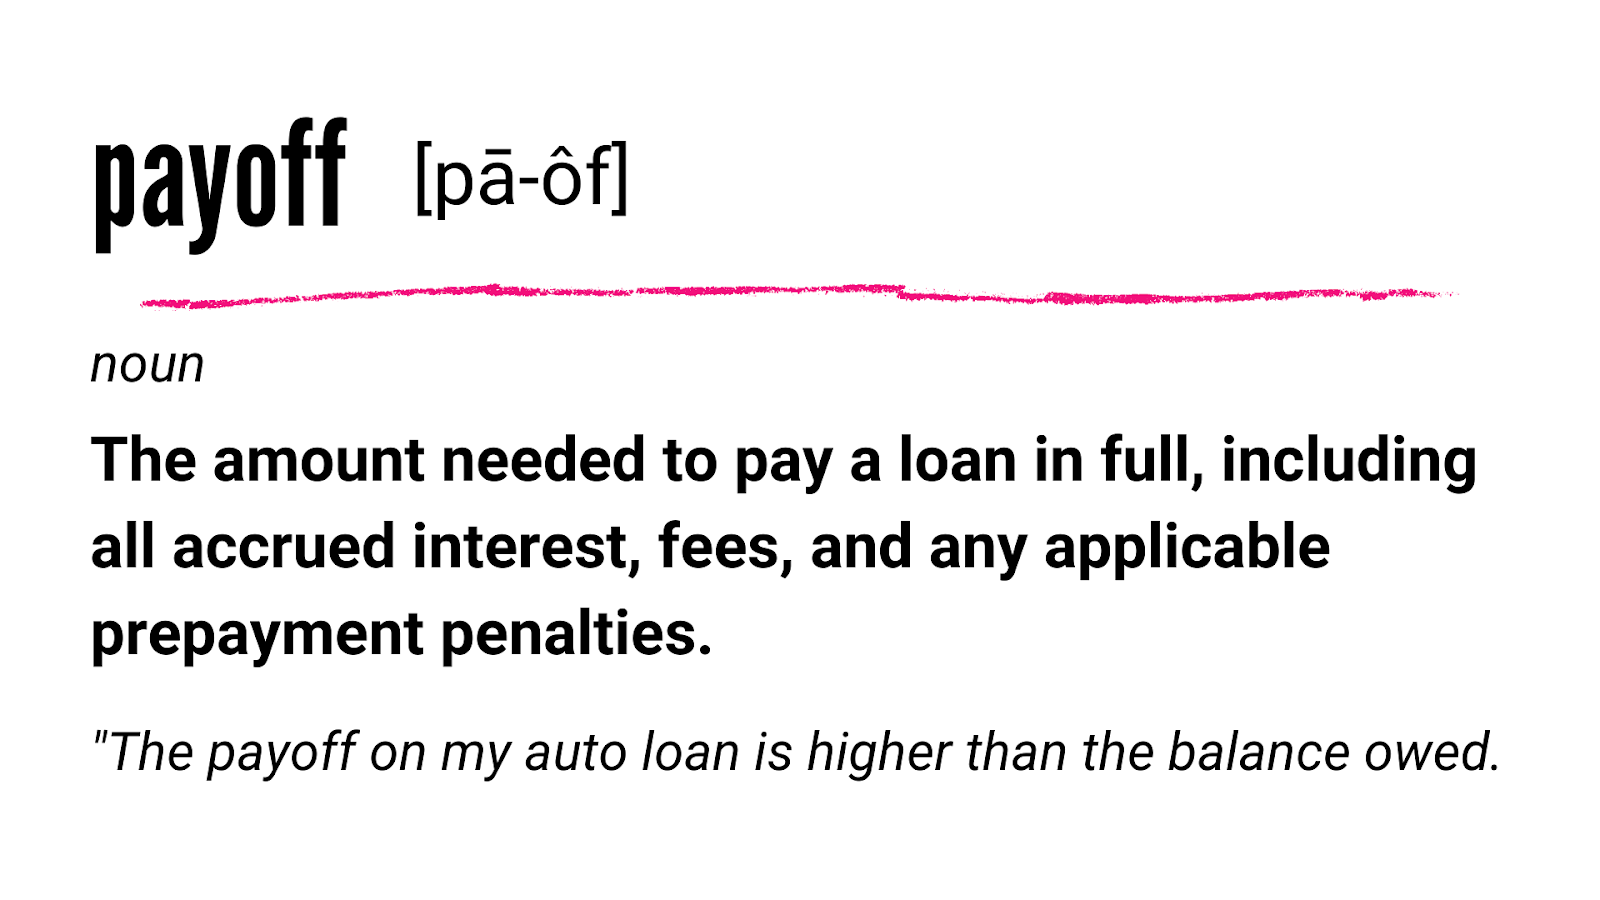 Payoff meaning in finance